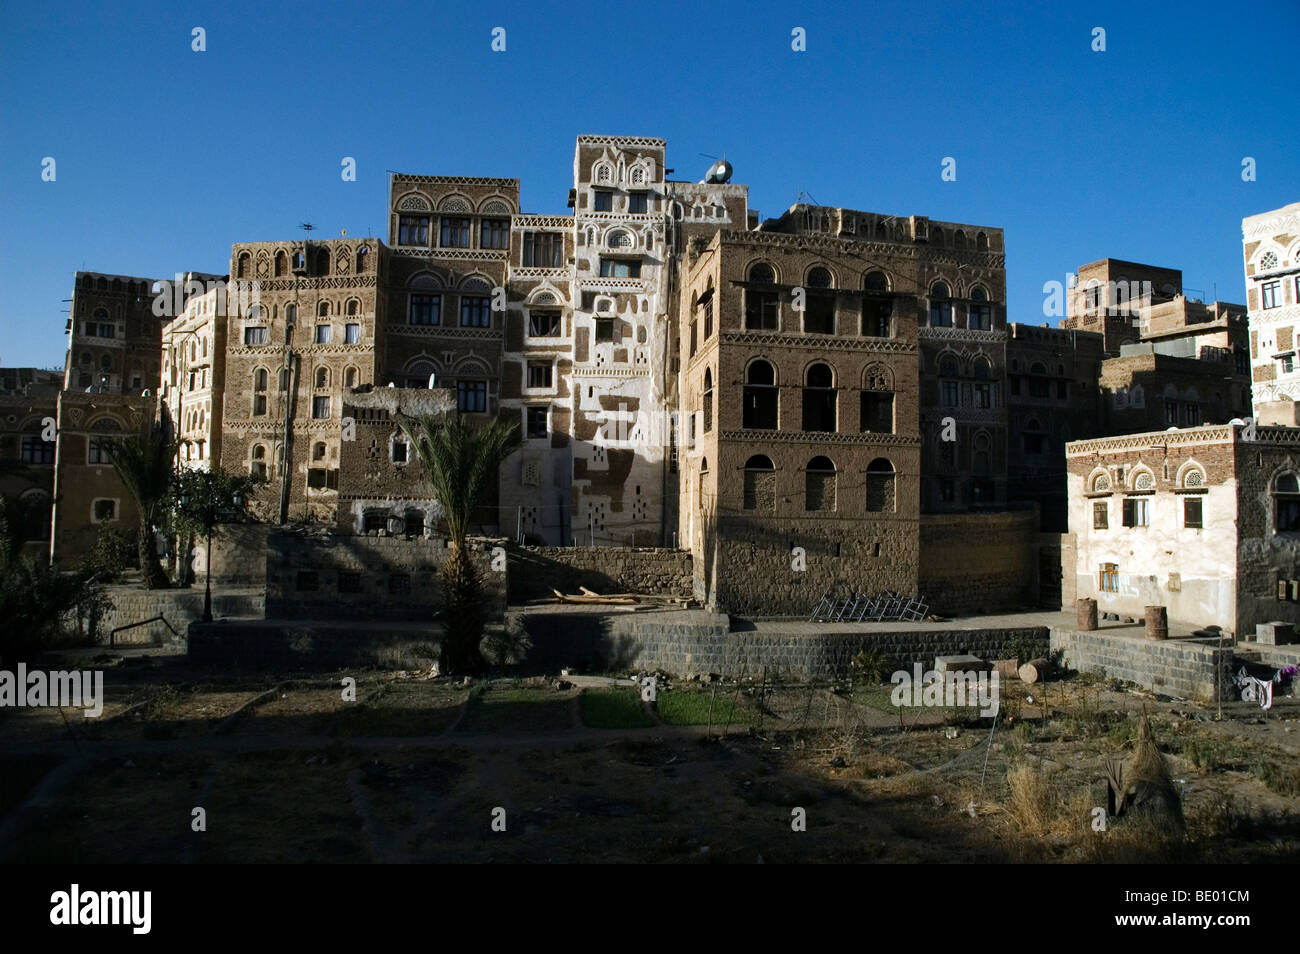 Old tower houses and traditional architecture in the Old City of Sana'a, Yemen. Stock Photo